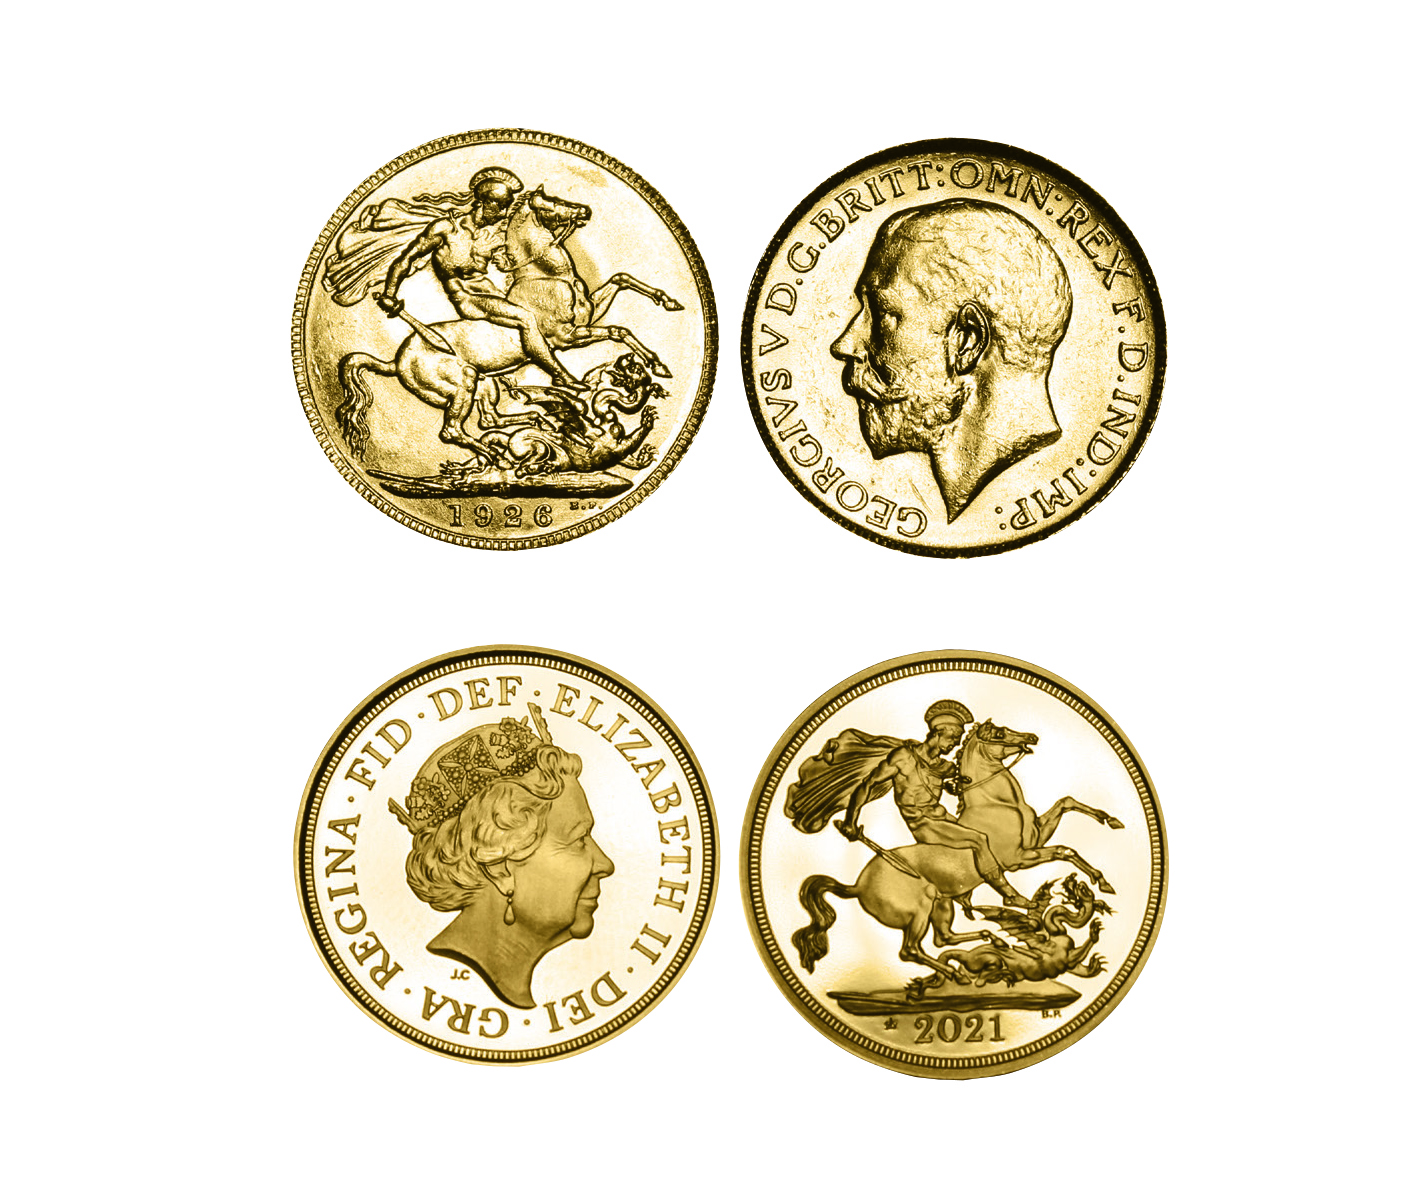 Queen Elizabeth II 95th Birthday Gold Sovereign Pair of 1926 & 2021